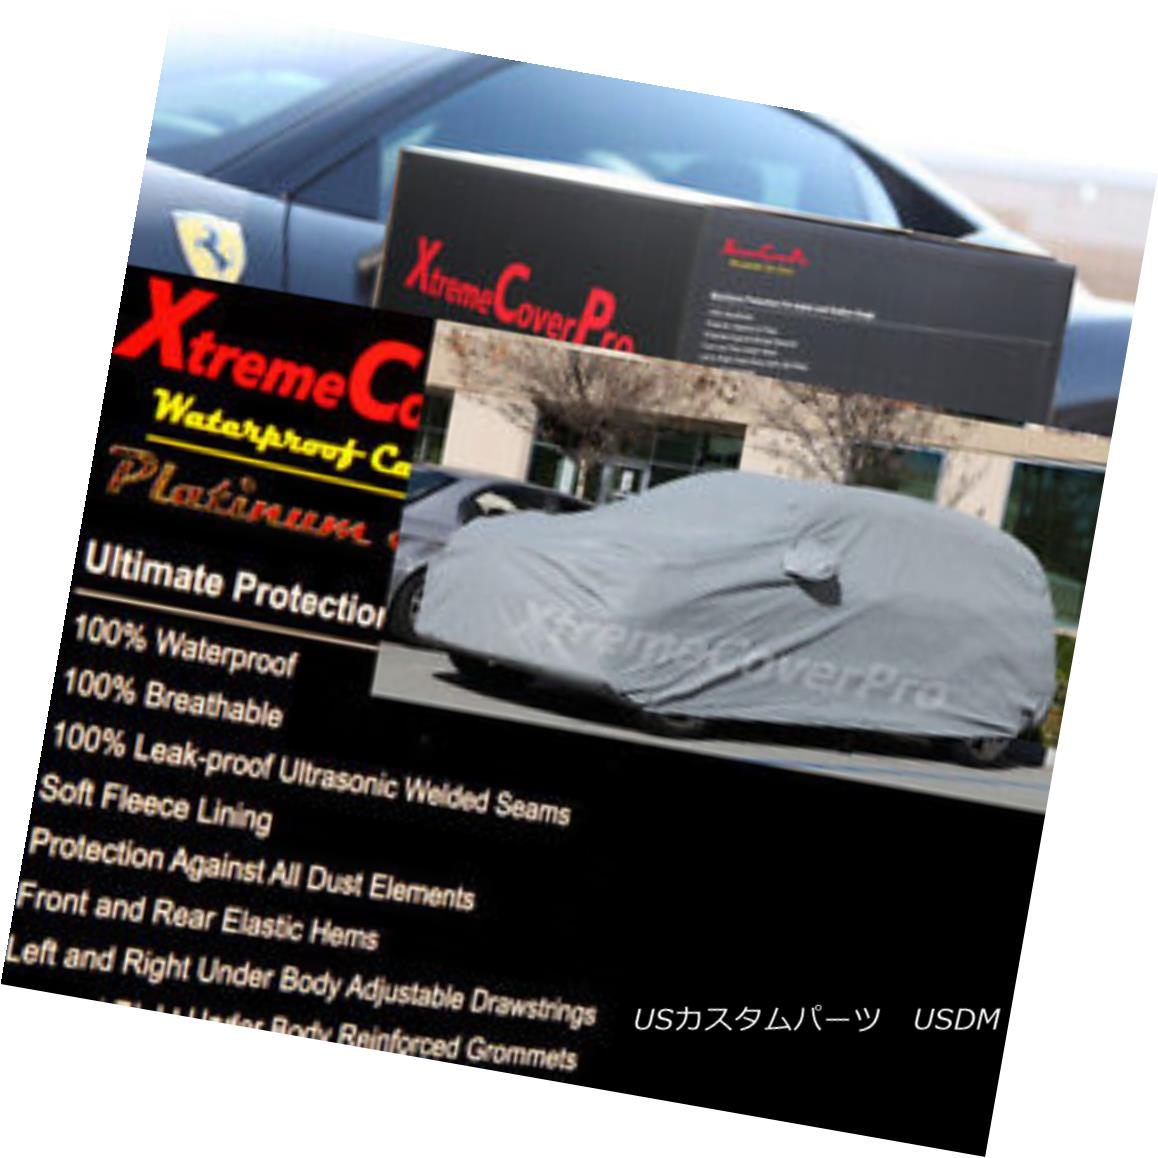 カーカバー 2015 HONDA CROSSTOUR Waterproof Car Cover w/Mirror Pockets - Gray 2015 HONDA CROSSTOURミラーポケット付き防水カーカバー - グレー